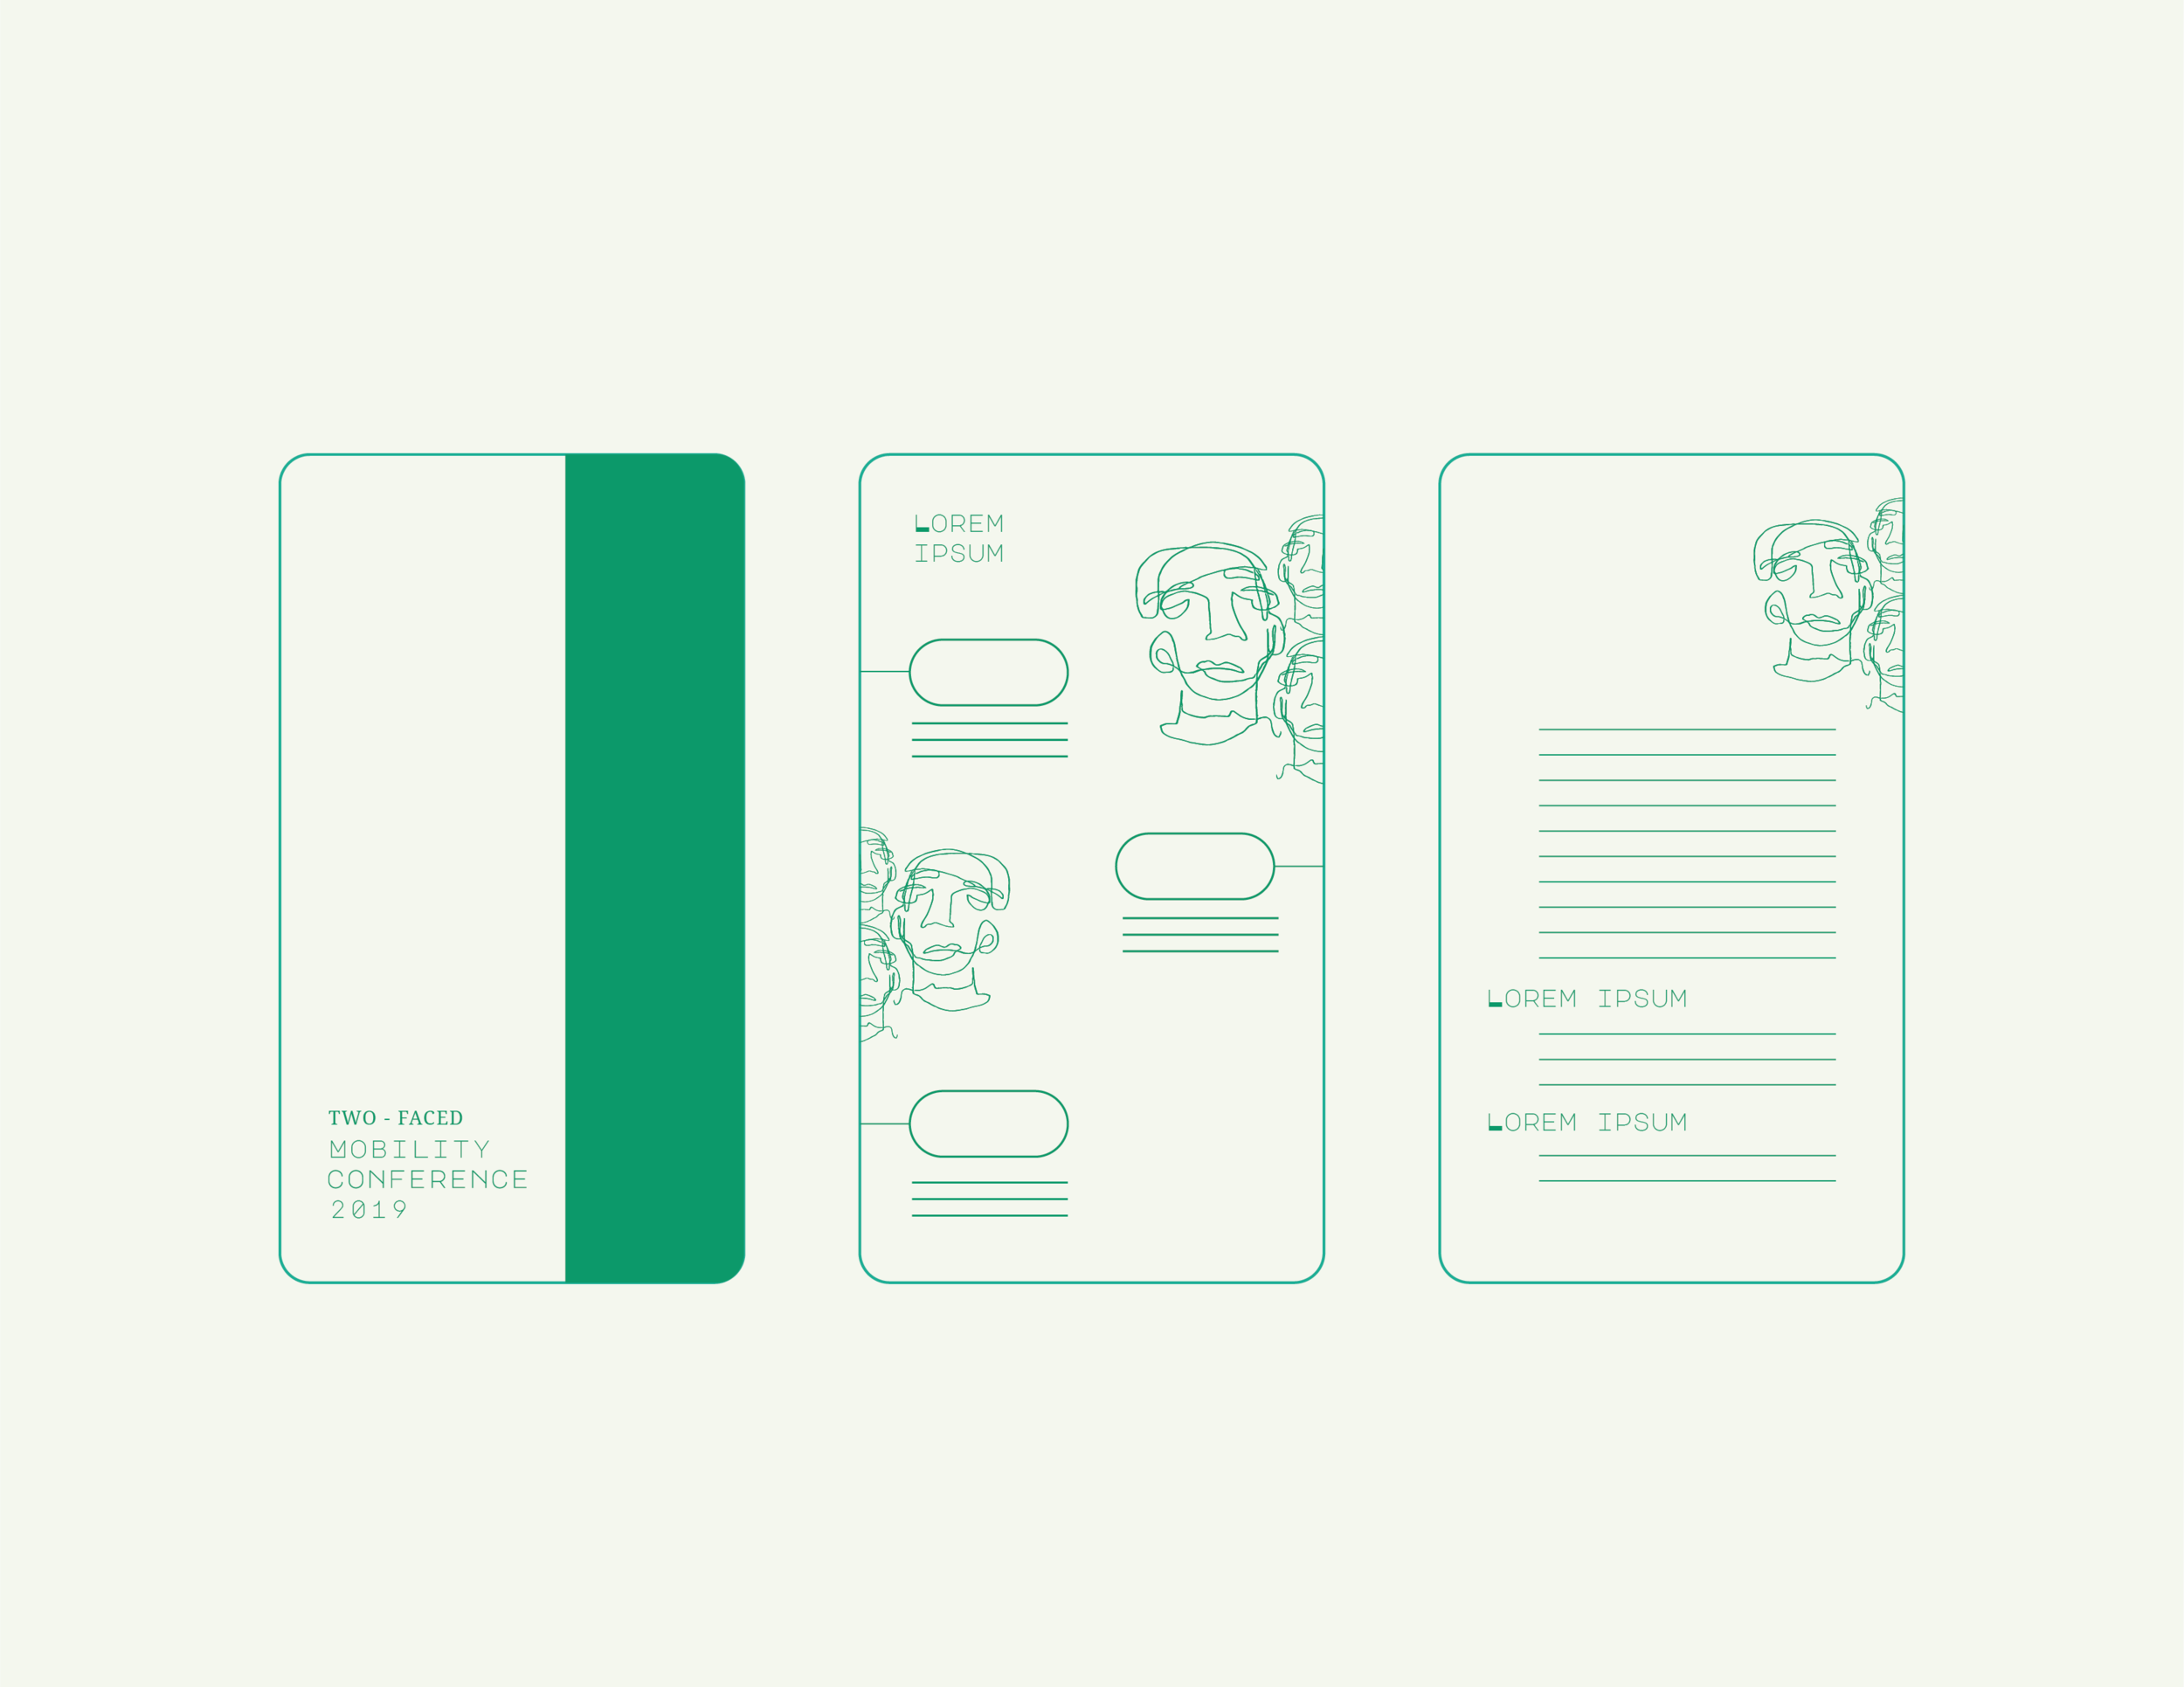 2F_Wireframes-02.png